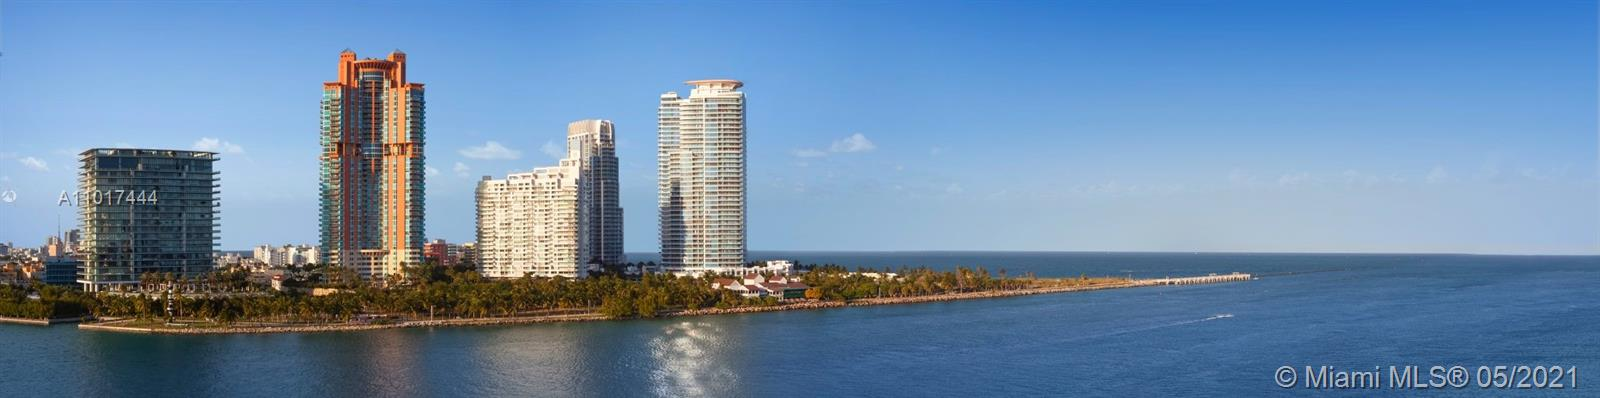 6800 Fisher Island Drive Unit 6875, Fisher Island, Florida 33109